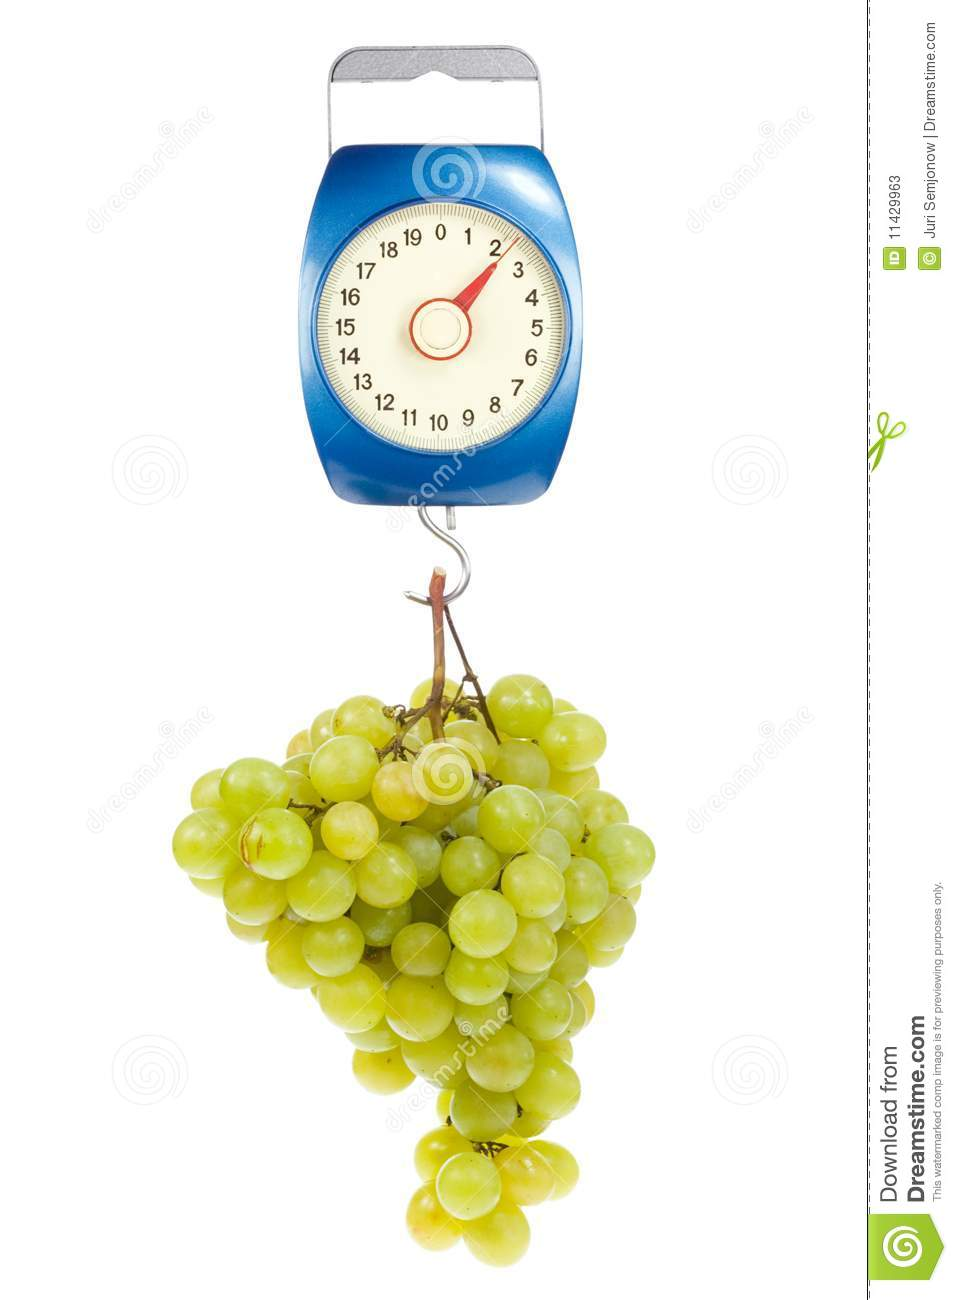 Kitchen scales and green grapes.